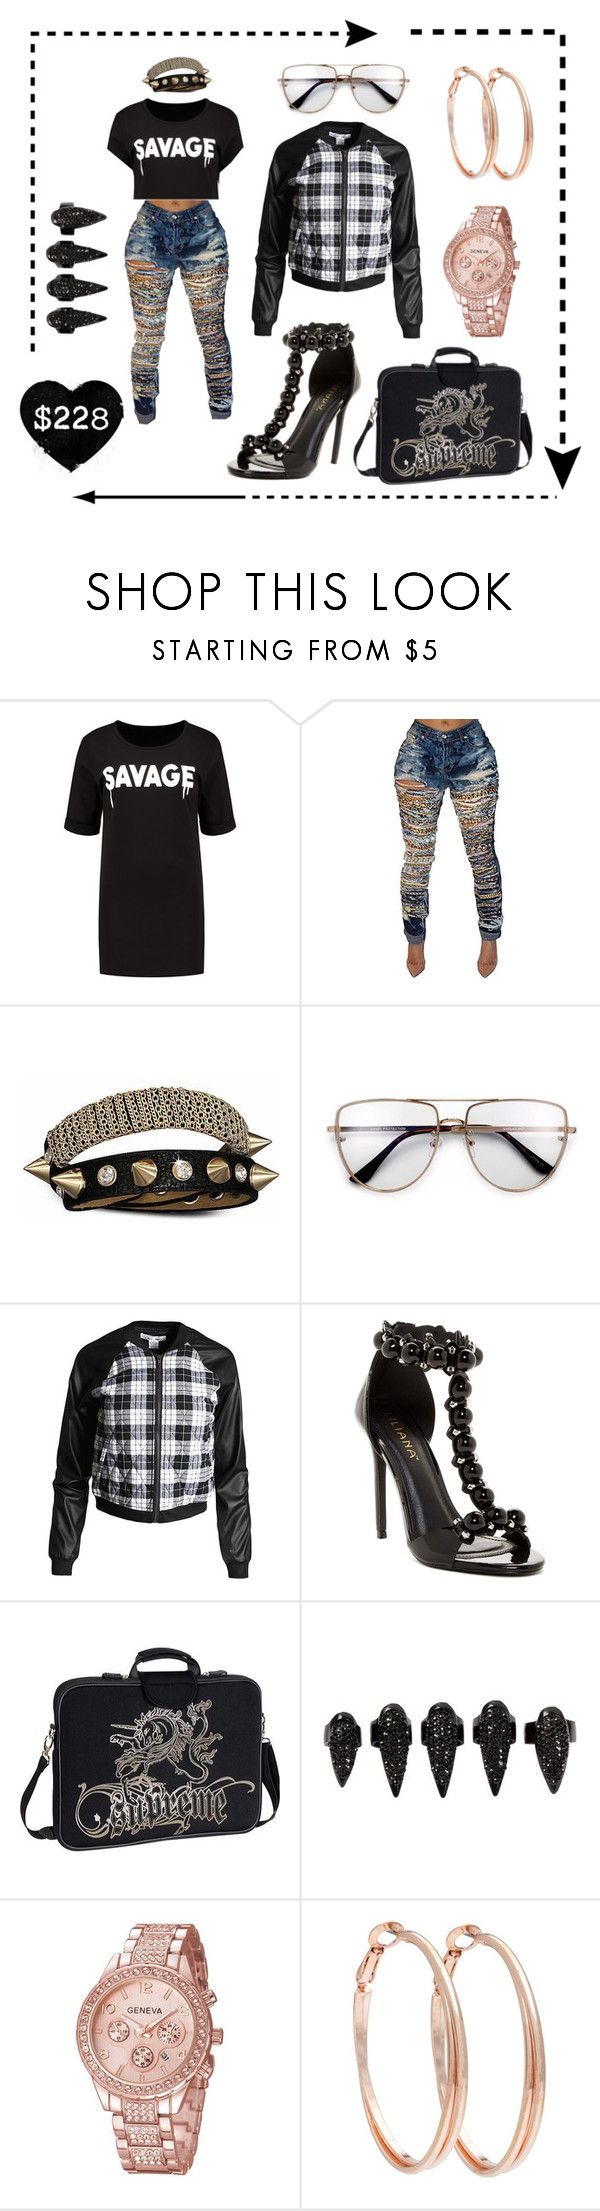 """Chicago Street style #360"" by missactive-xtraordinary ❤ liked on Polyvore featuring Bling Jewelry, Sans Souci, Liliana, Laurex, Retrò and Alexa Starr"